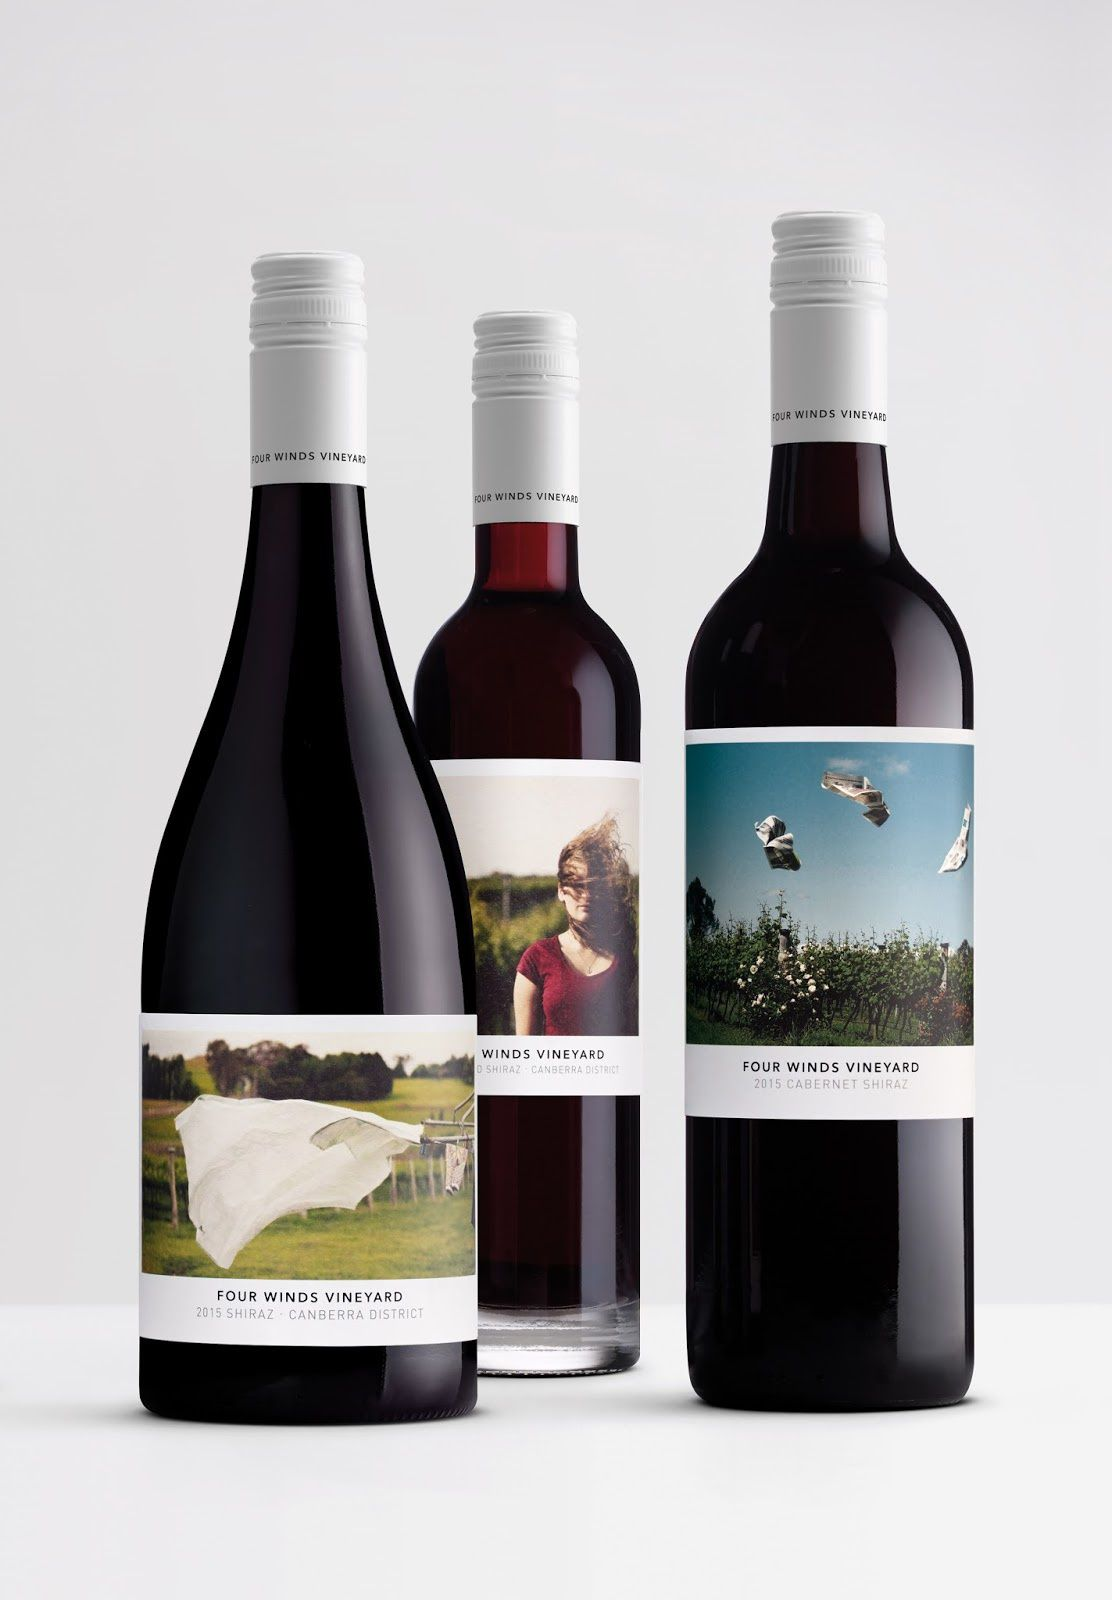 Four Winds Vineyard (vin australien) I Design : Denomination, Australie (février 2018)